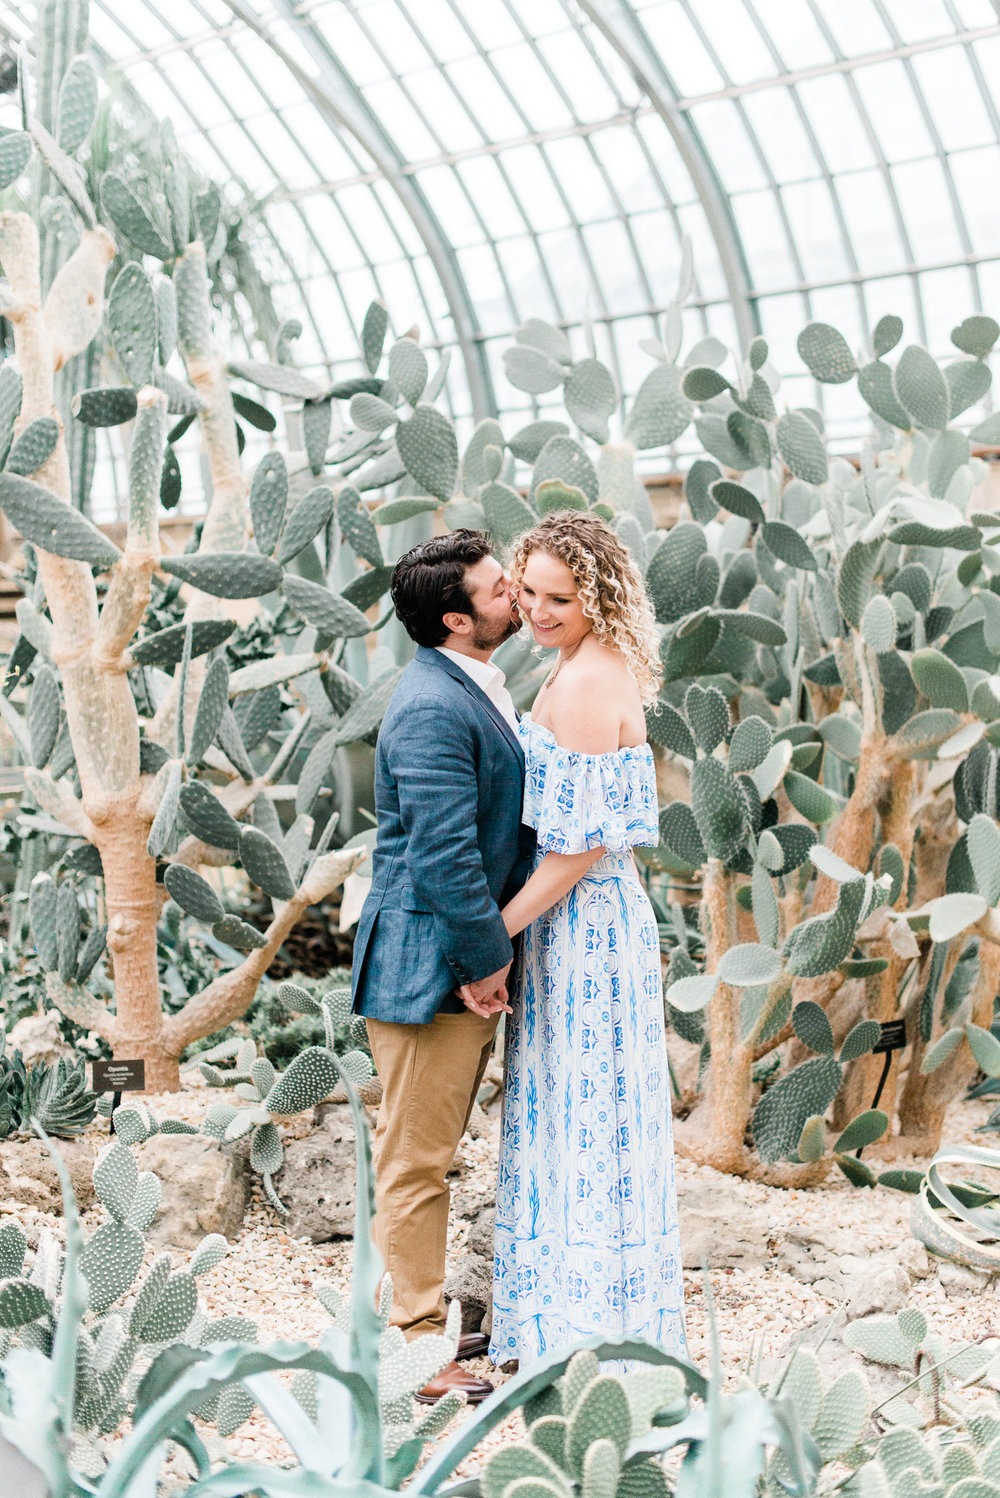 Brittany Bekas - Garfield Park Conservatory Chicago Engagement Photos-23.jpg